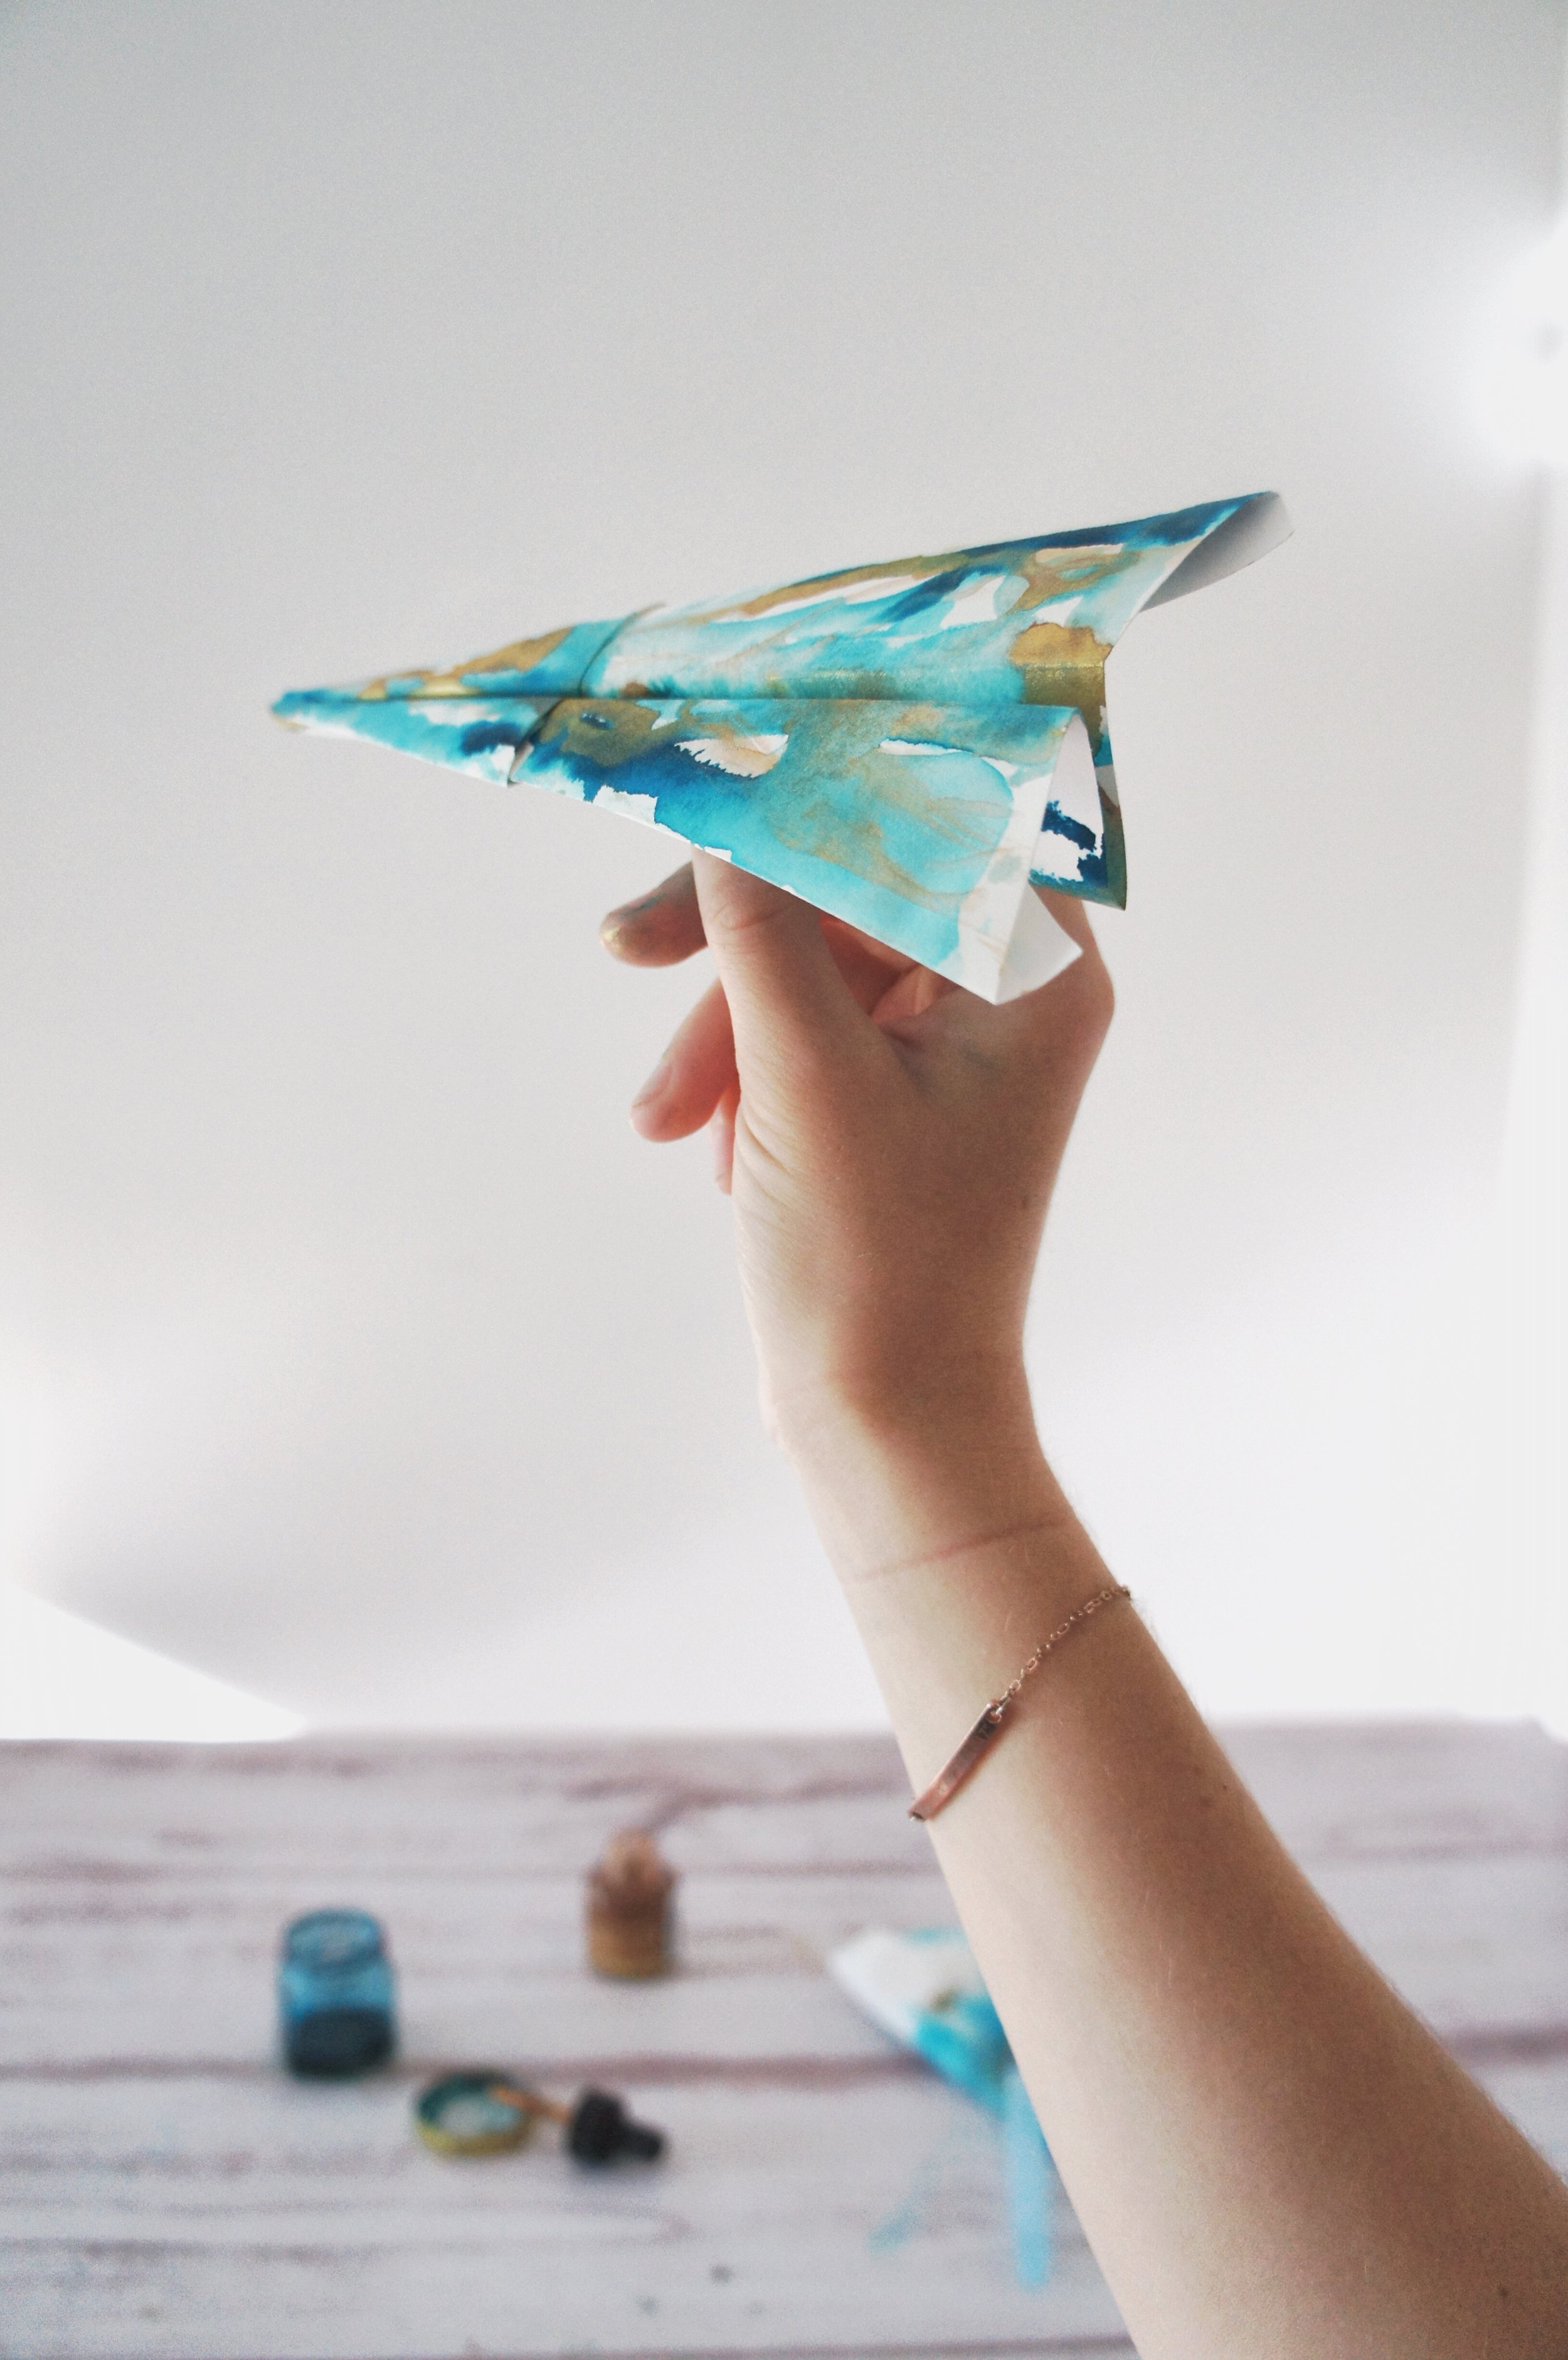 The Art of lonely artists - and paper airplanes